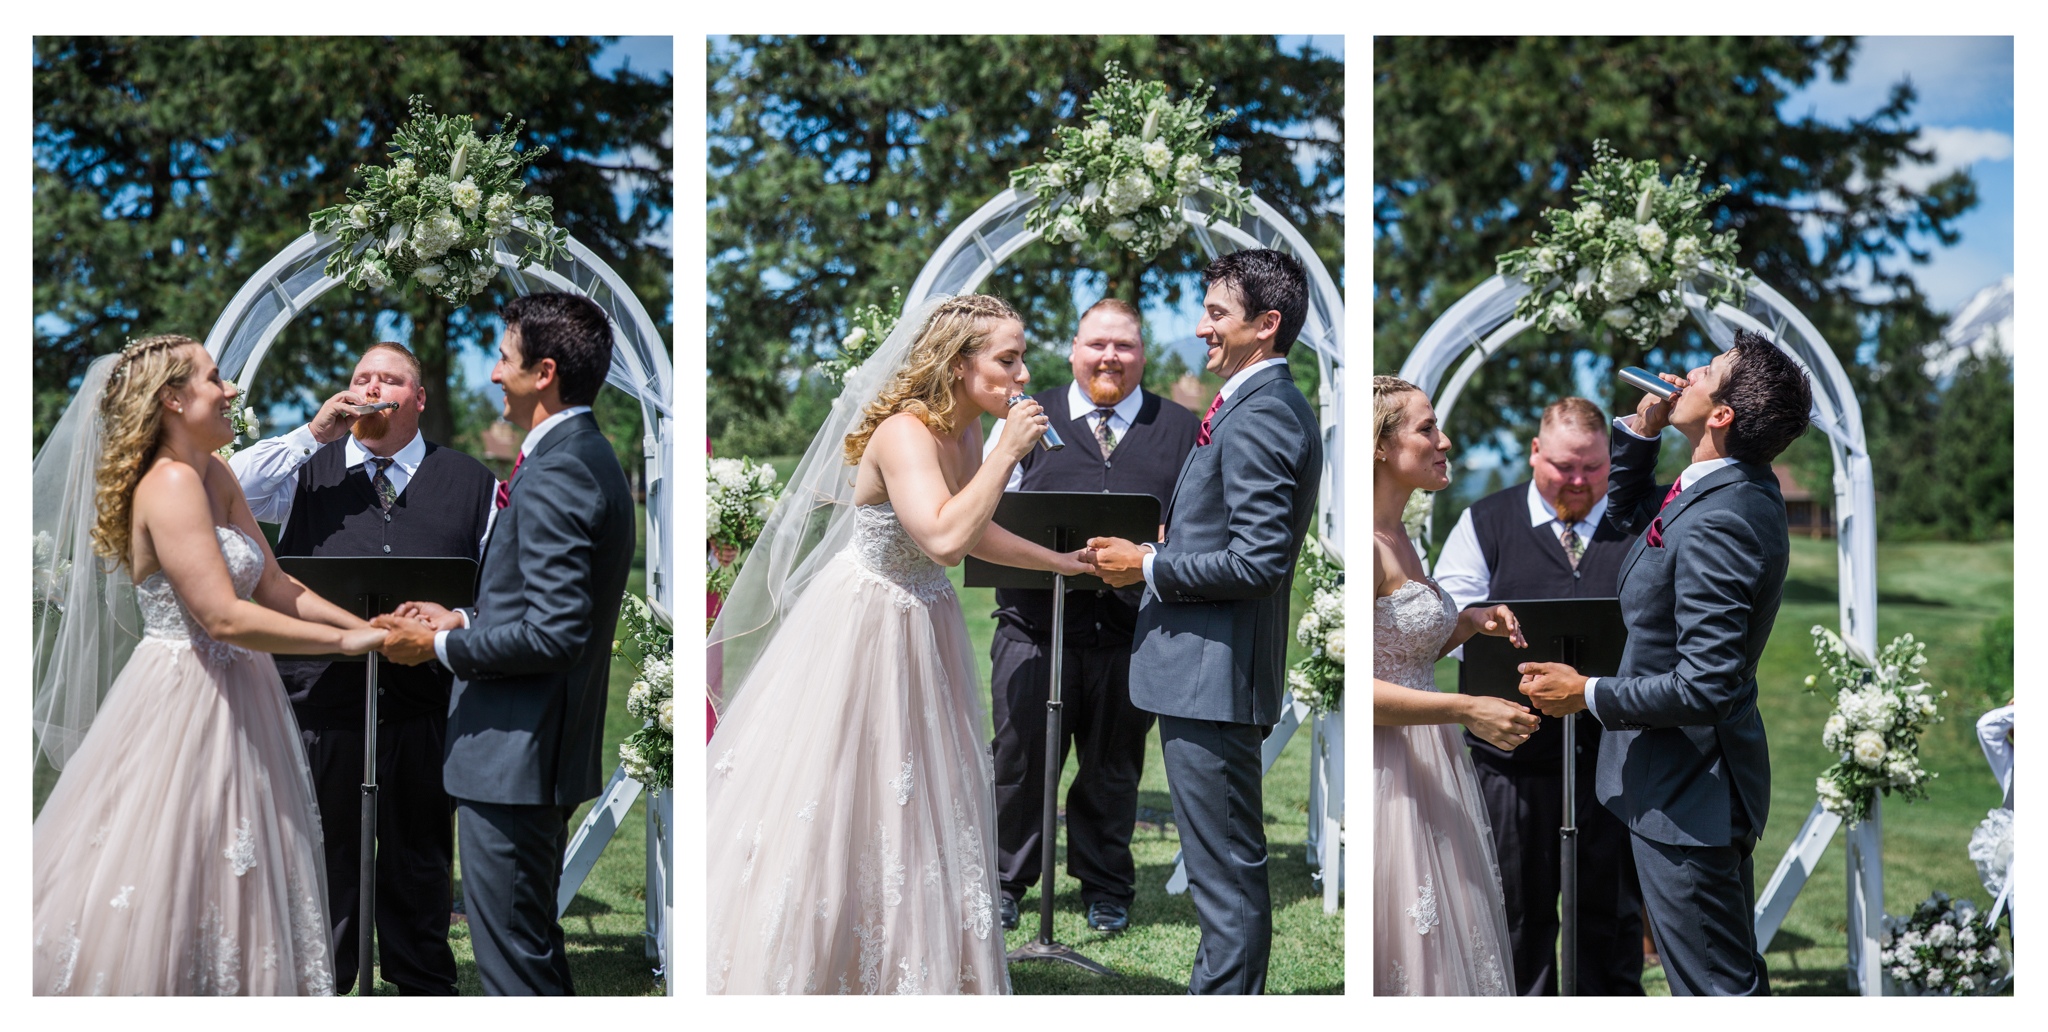 This hilarious booze-filled ceremony